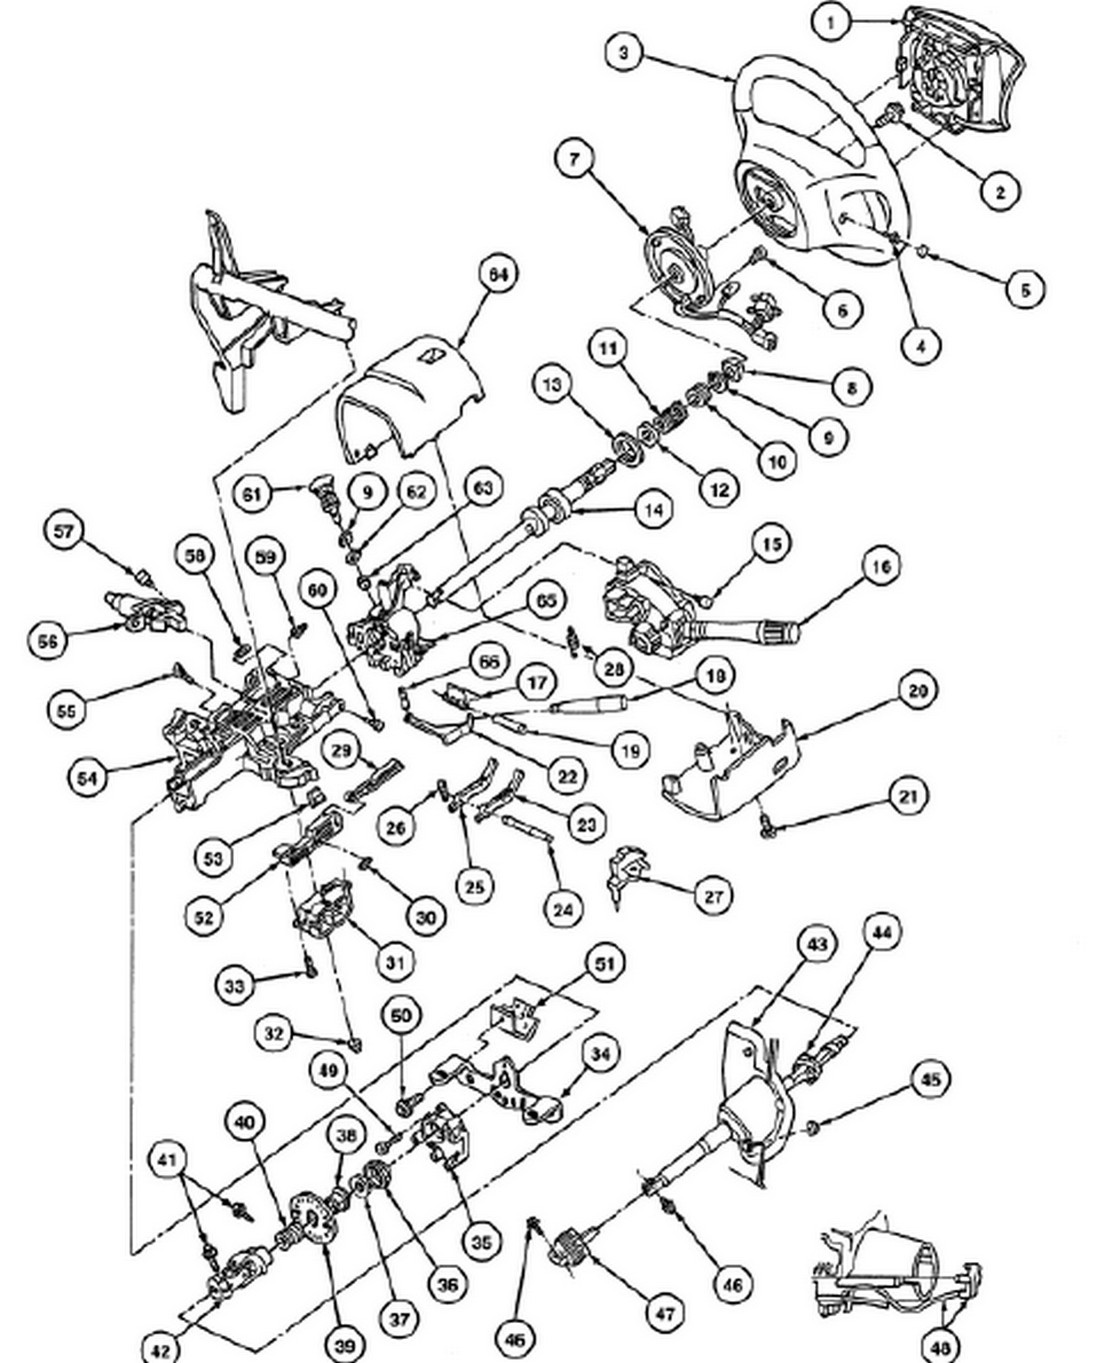 97 ford ranger steering column diagram great installation of Ford Explorer Radio Wiring Diagram 1997 ford ranger steering column diagram wiring diagrams source rh 1 19 3 ludwiglab de 1999 ford explorer steering column diagram 1999 ford explorer